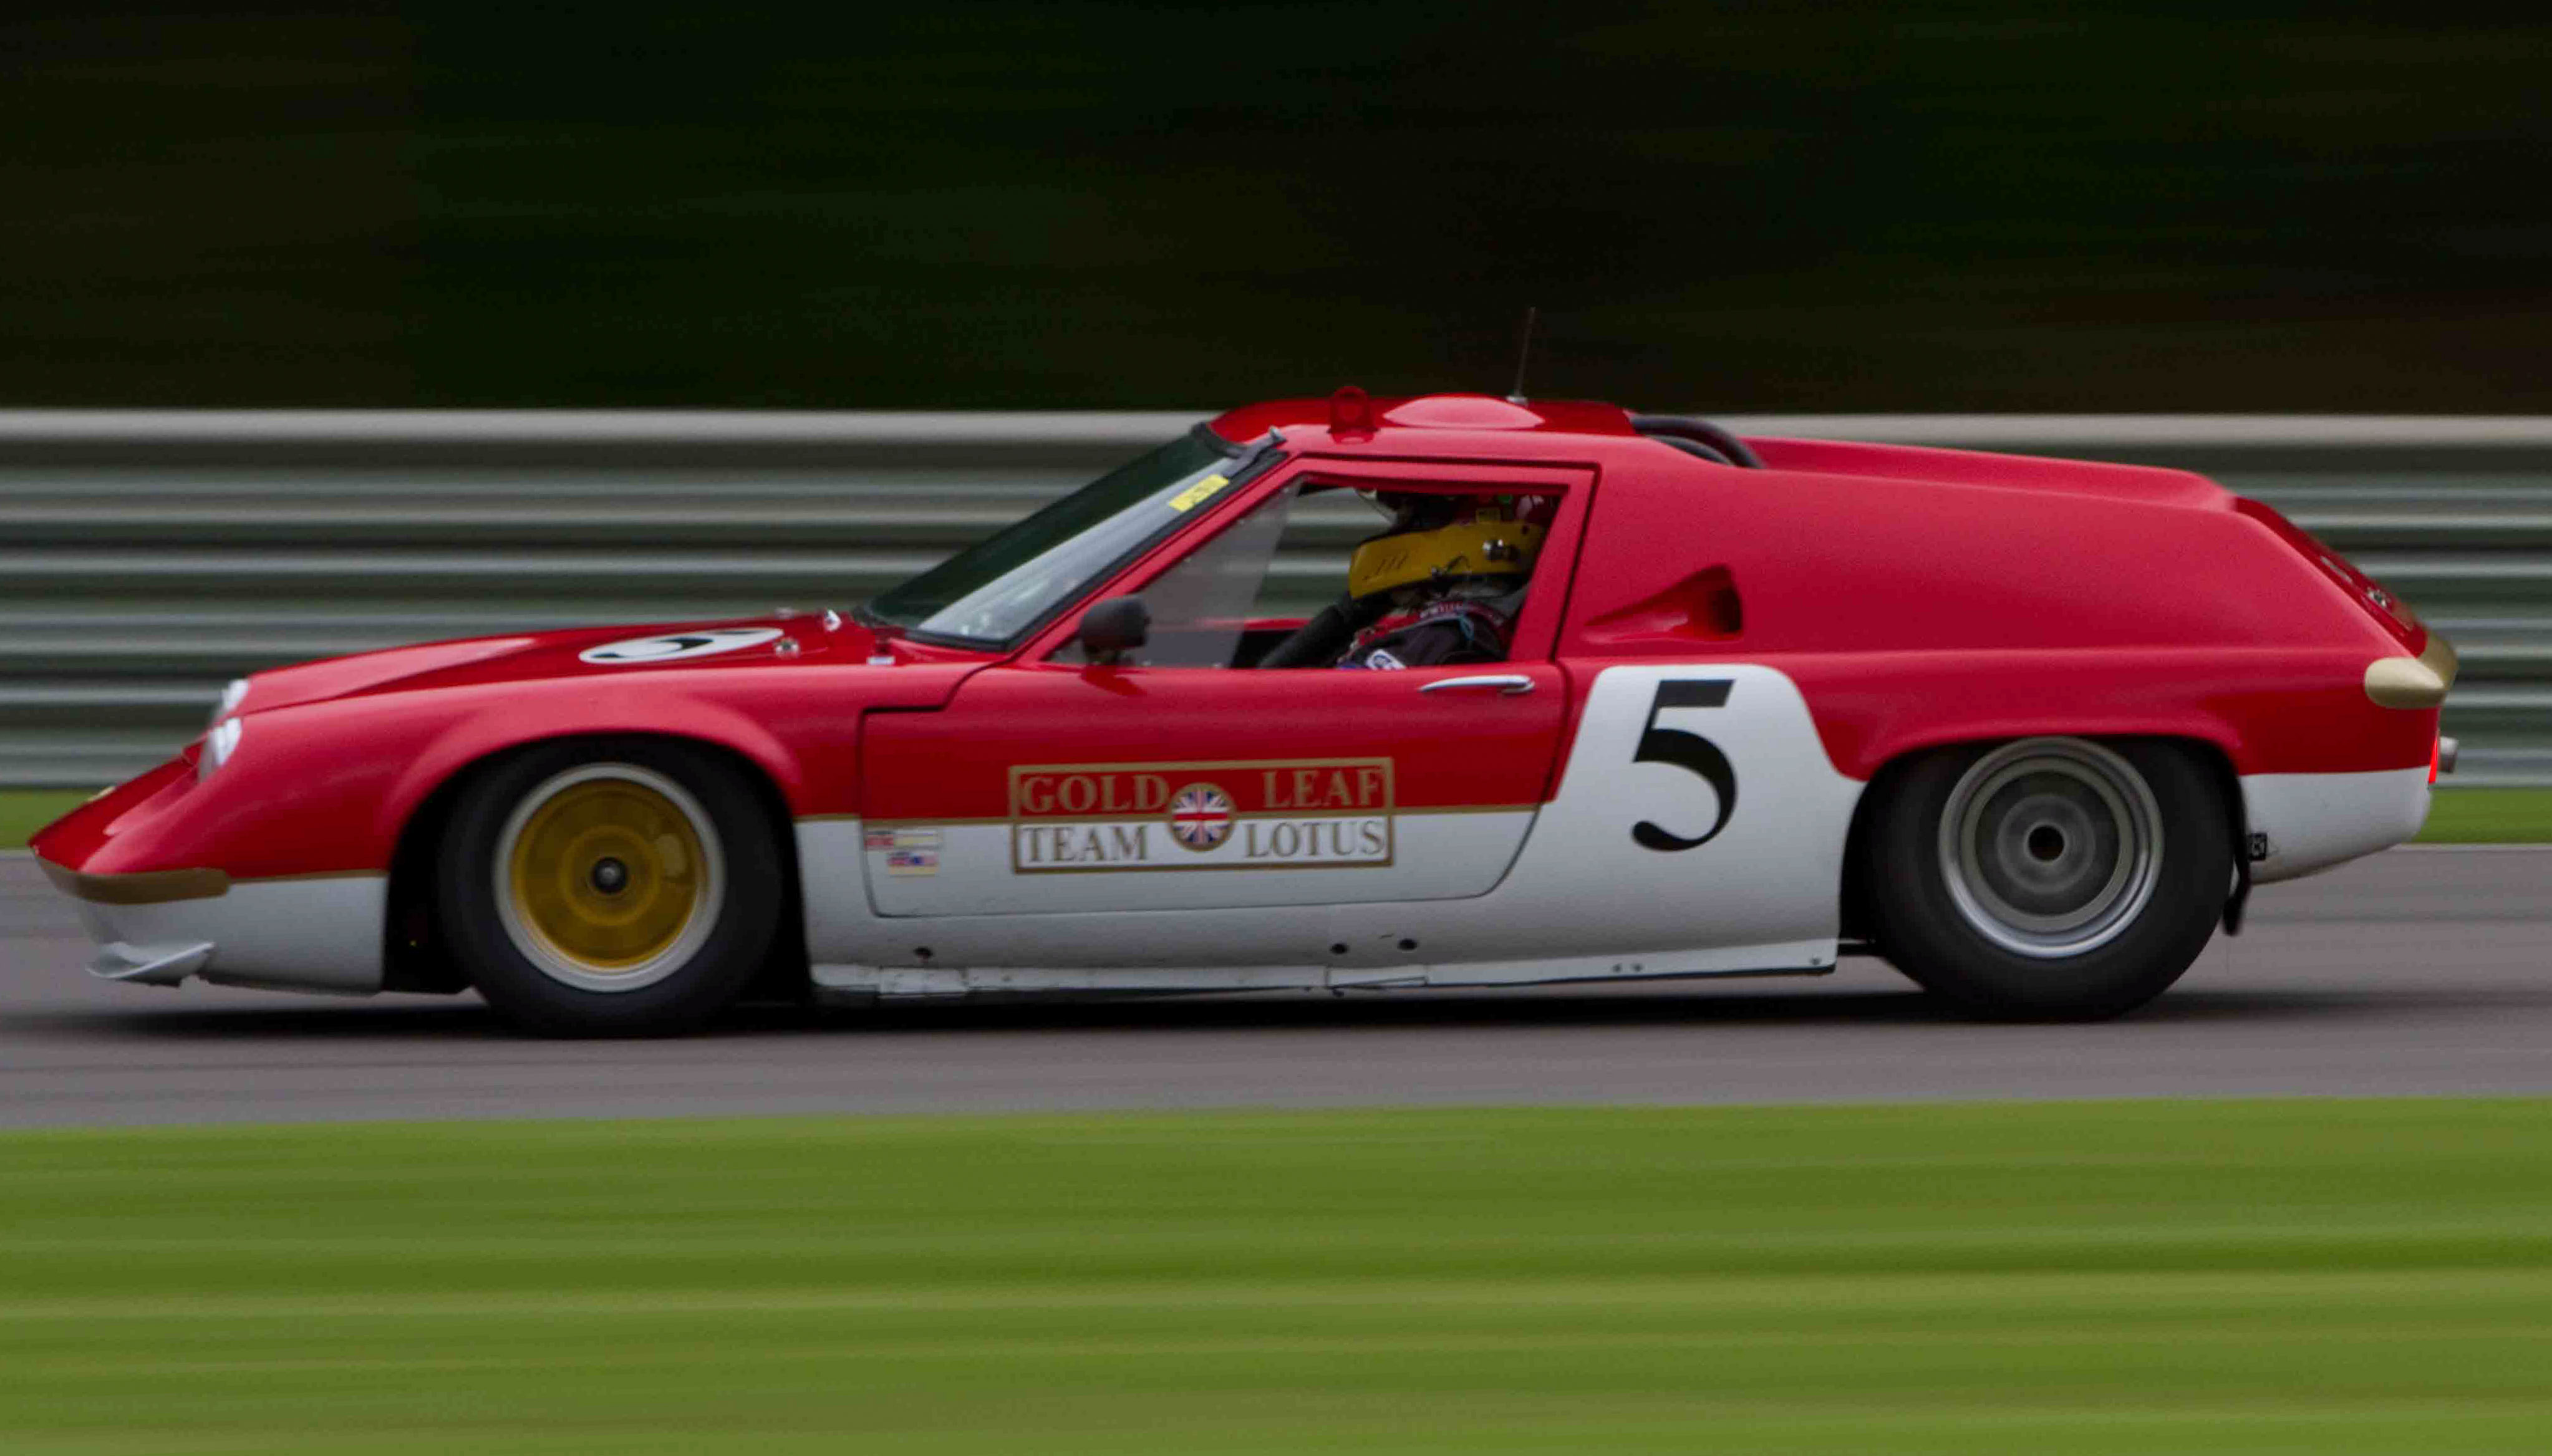 File:Lotus Europa at Barber 2010 01.jpg - Wikimedia Commons